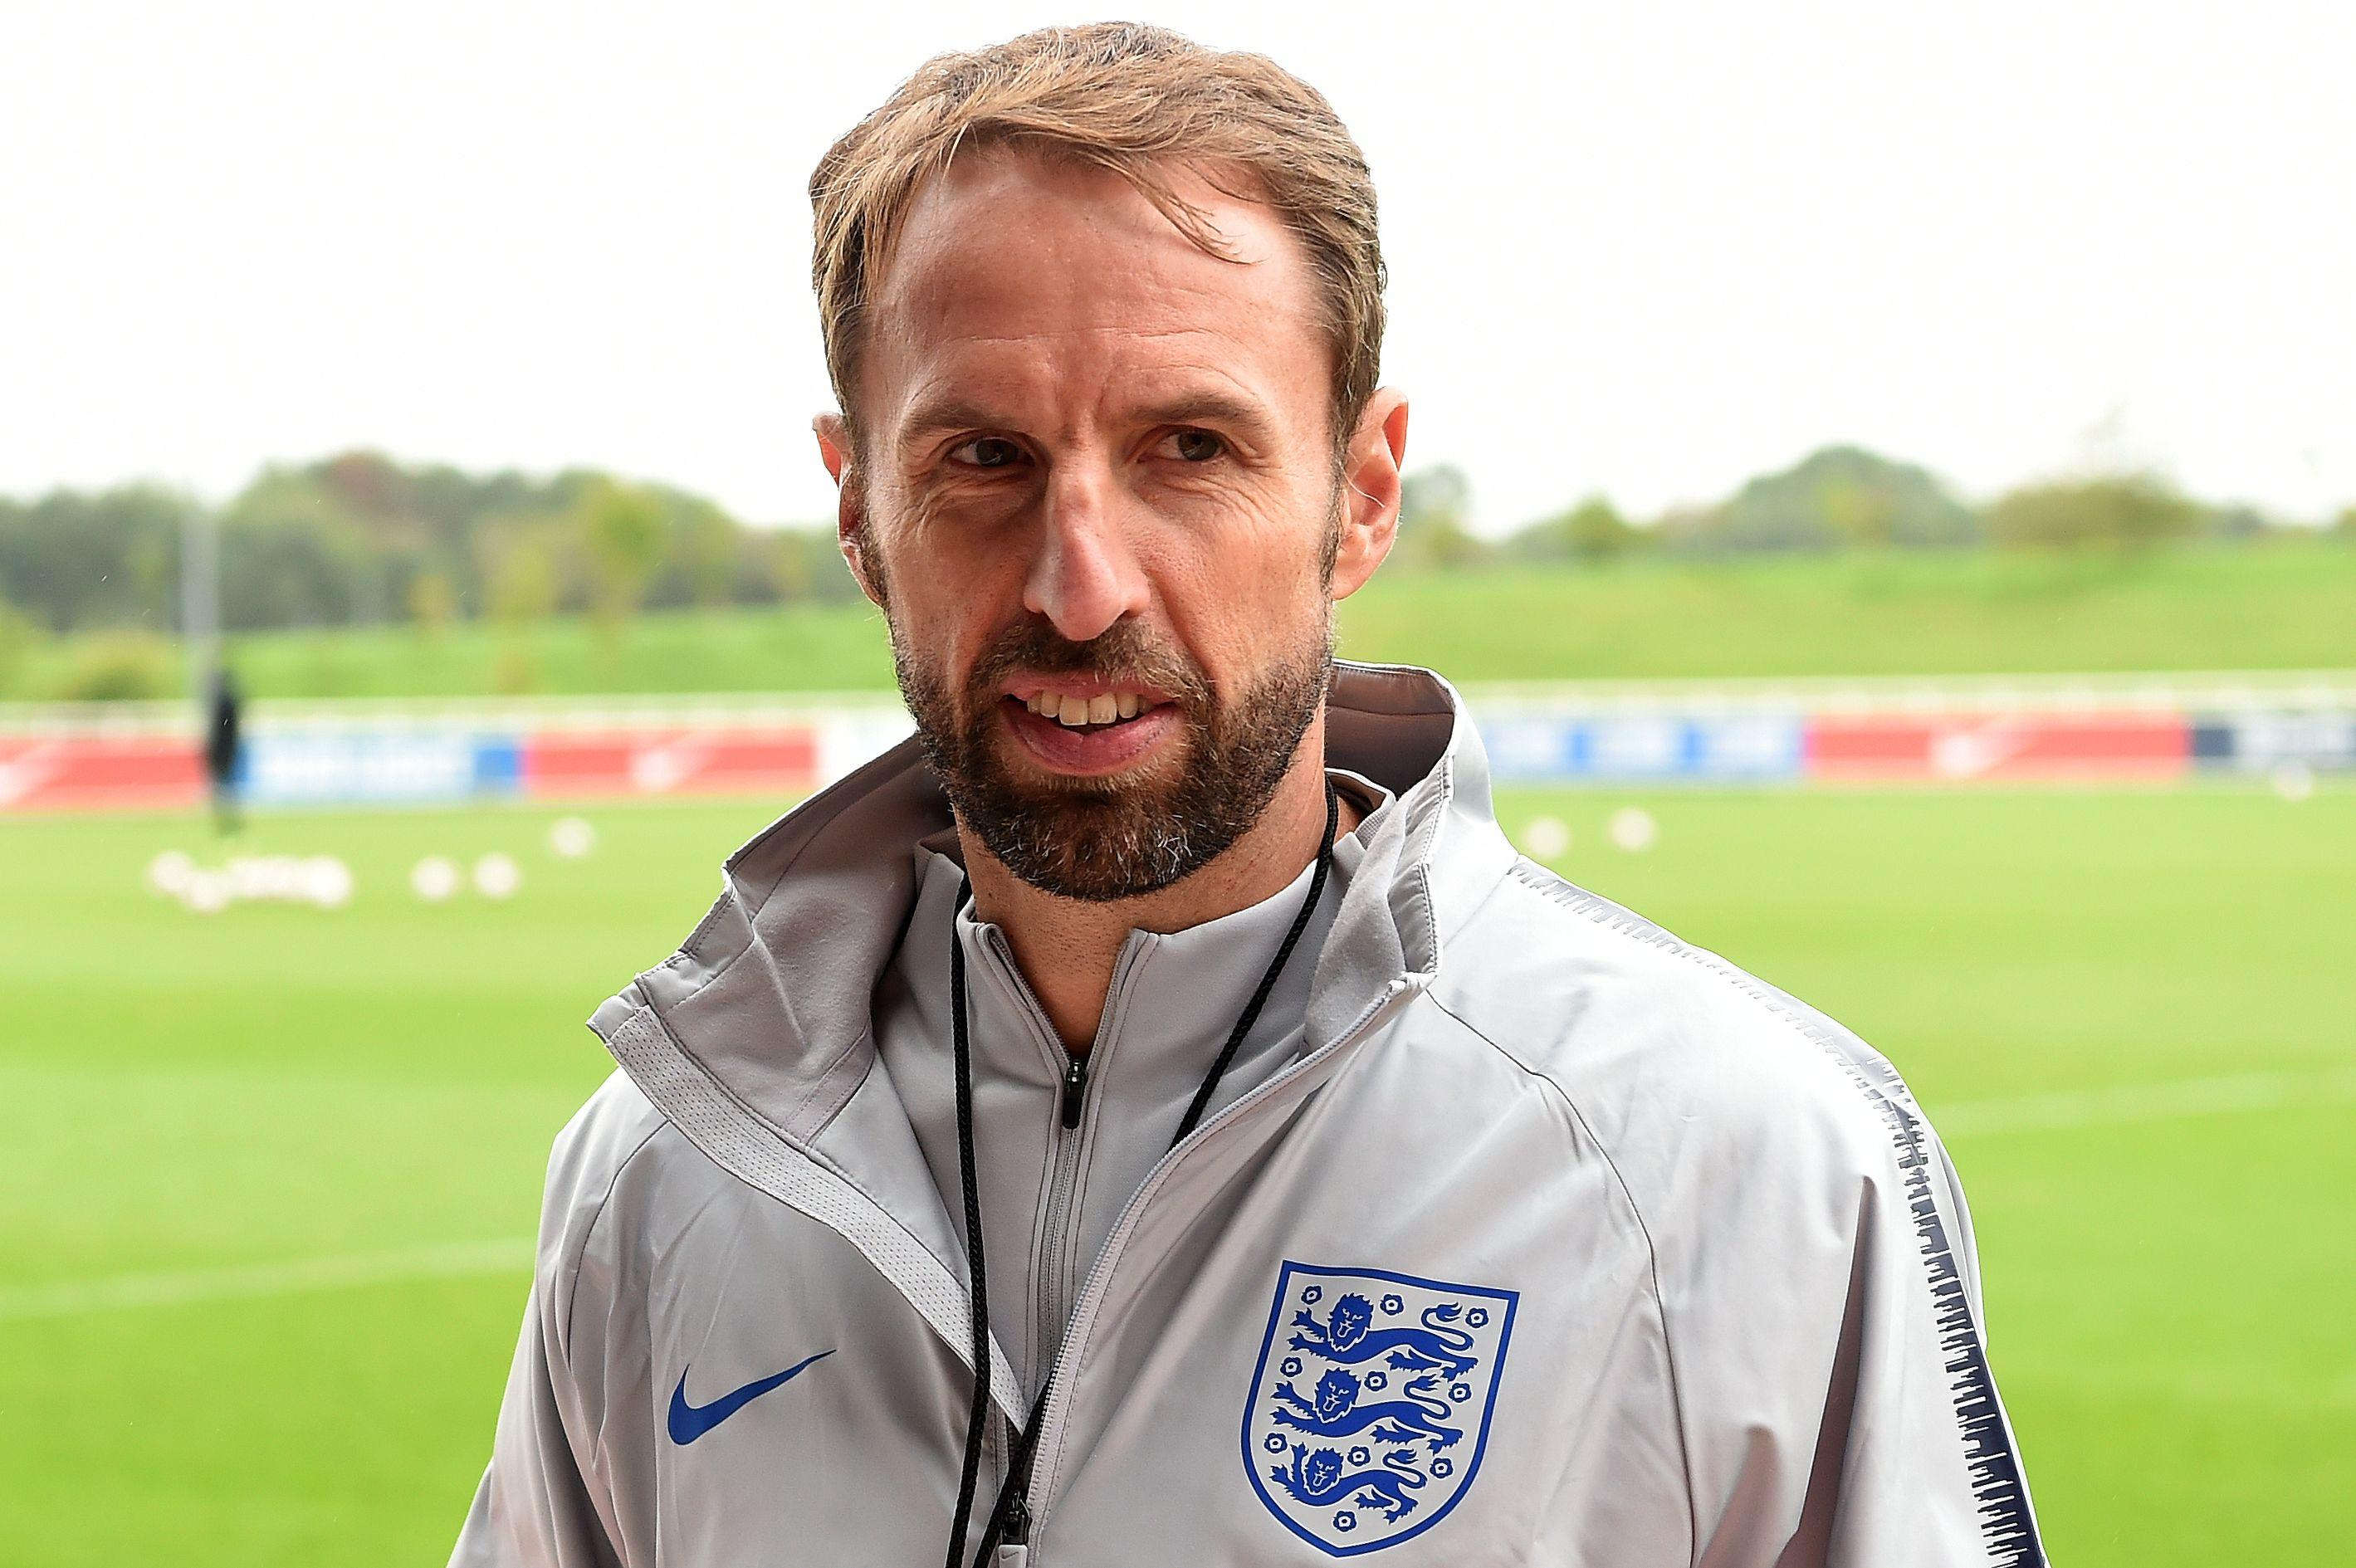 Gareth Southgate's England side face matches against Spain and Croatia in the Nations League